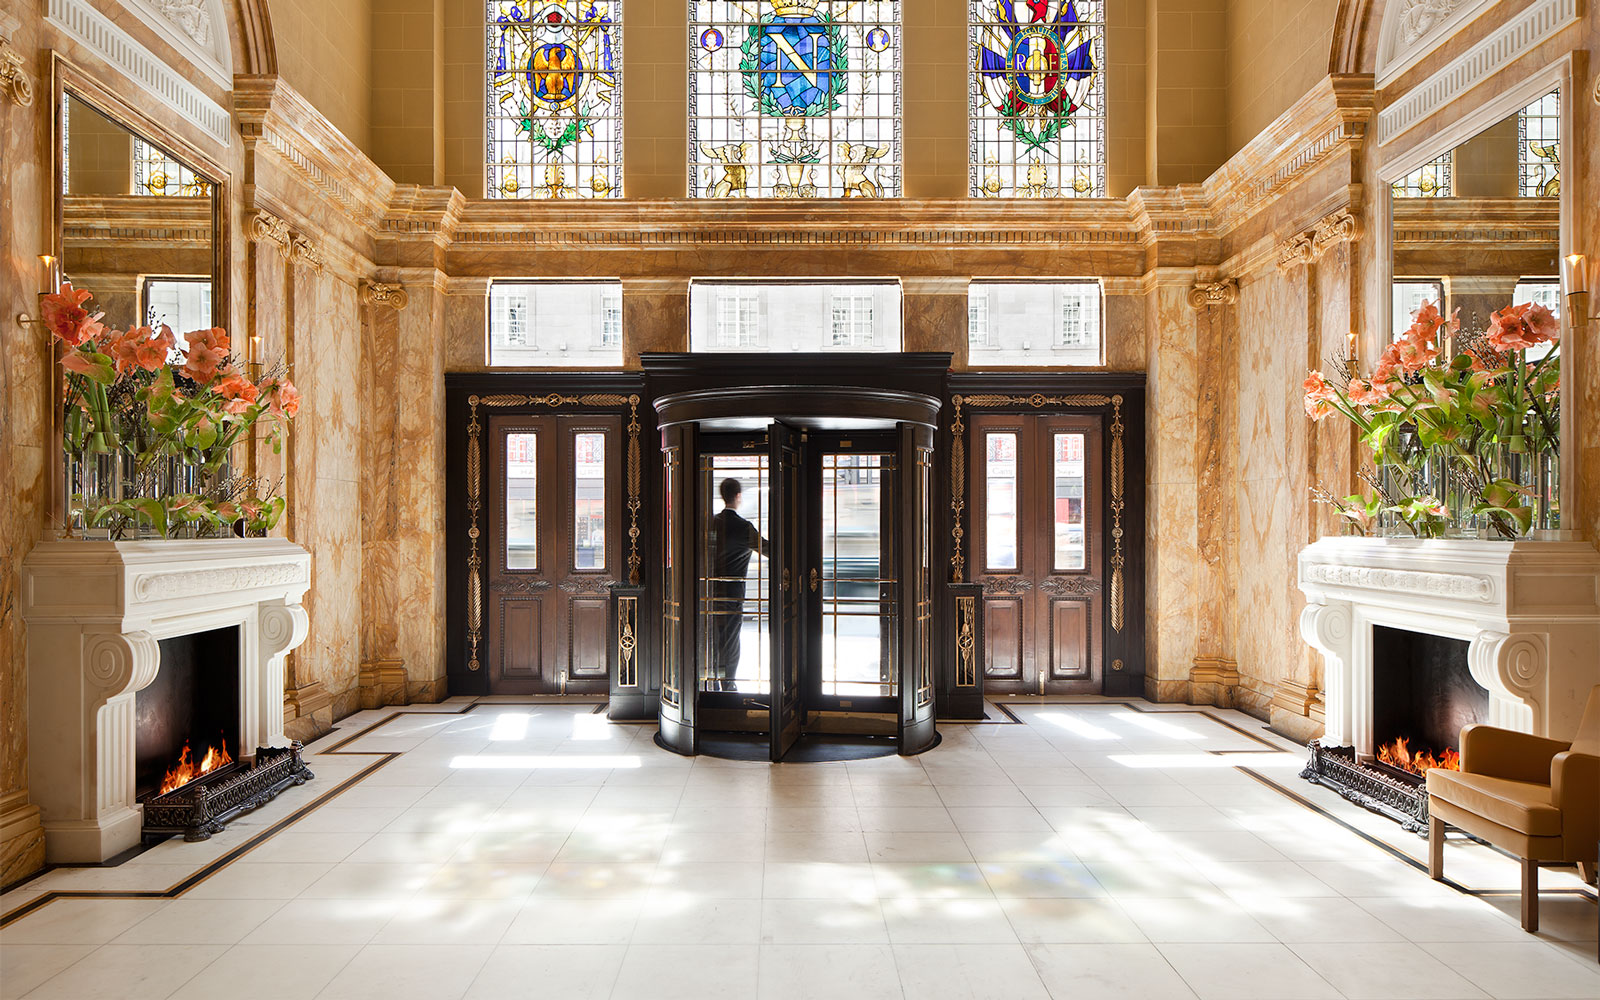 London's Cafe Royal Hotel Has Found its Footing